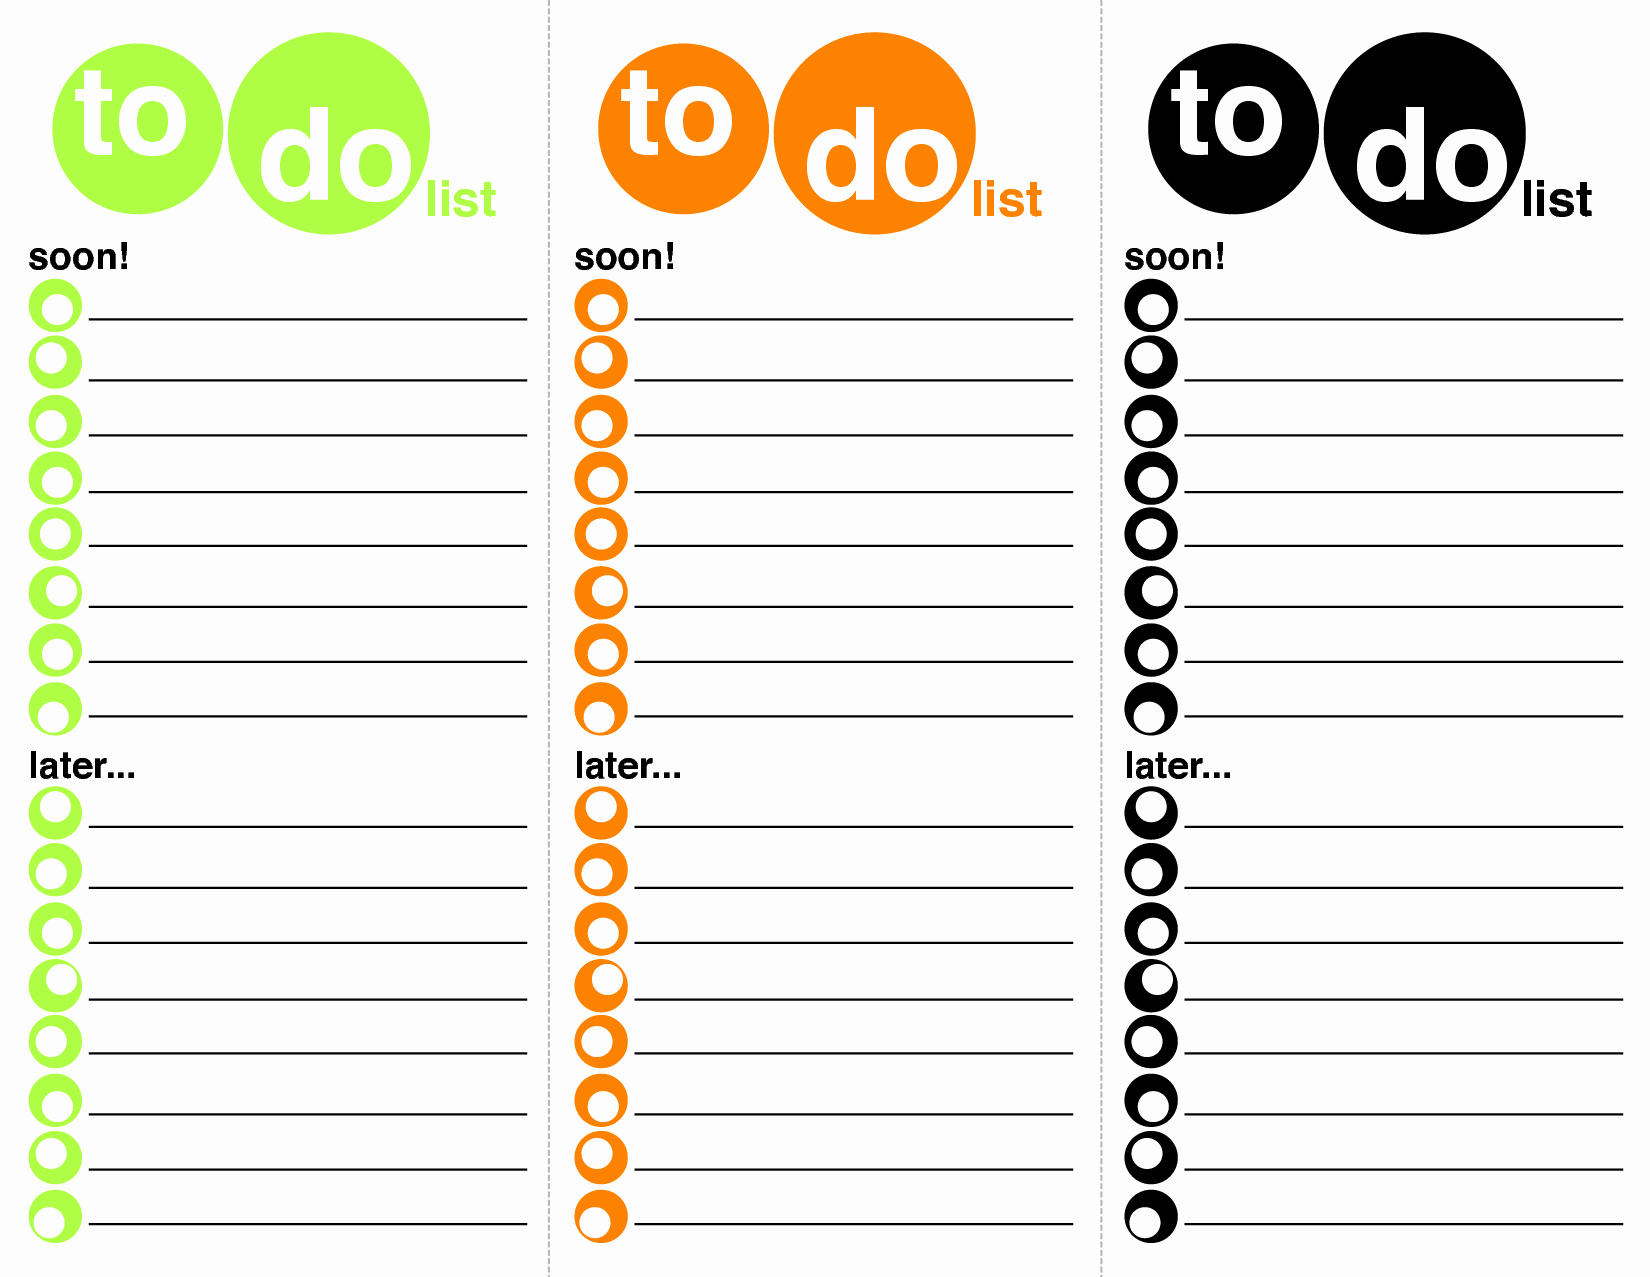 Today to Do List Template Awesome to Do List Template Word